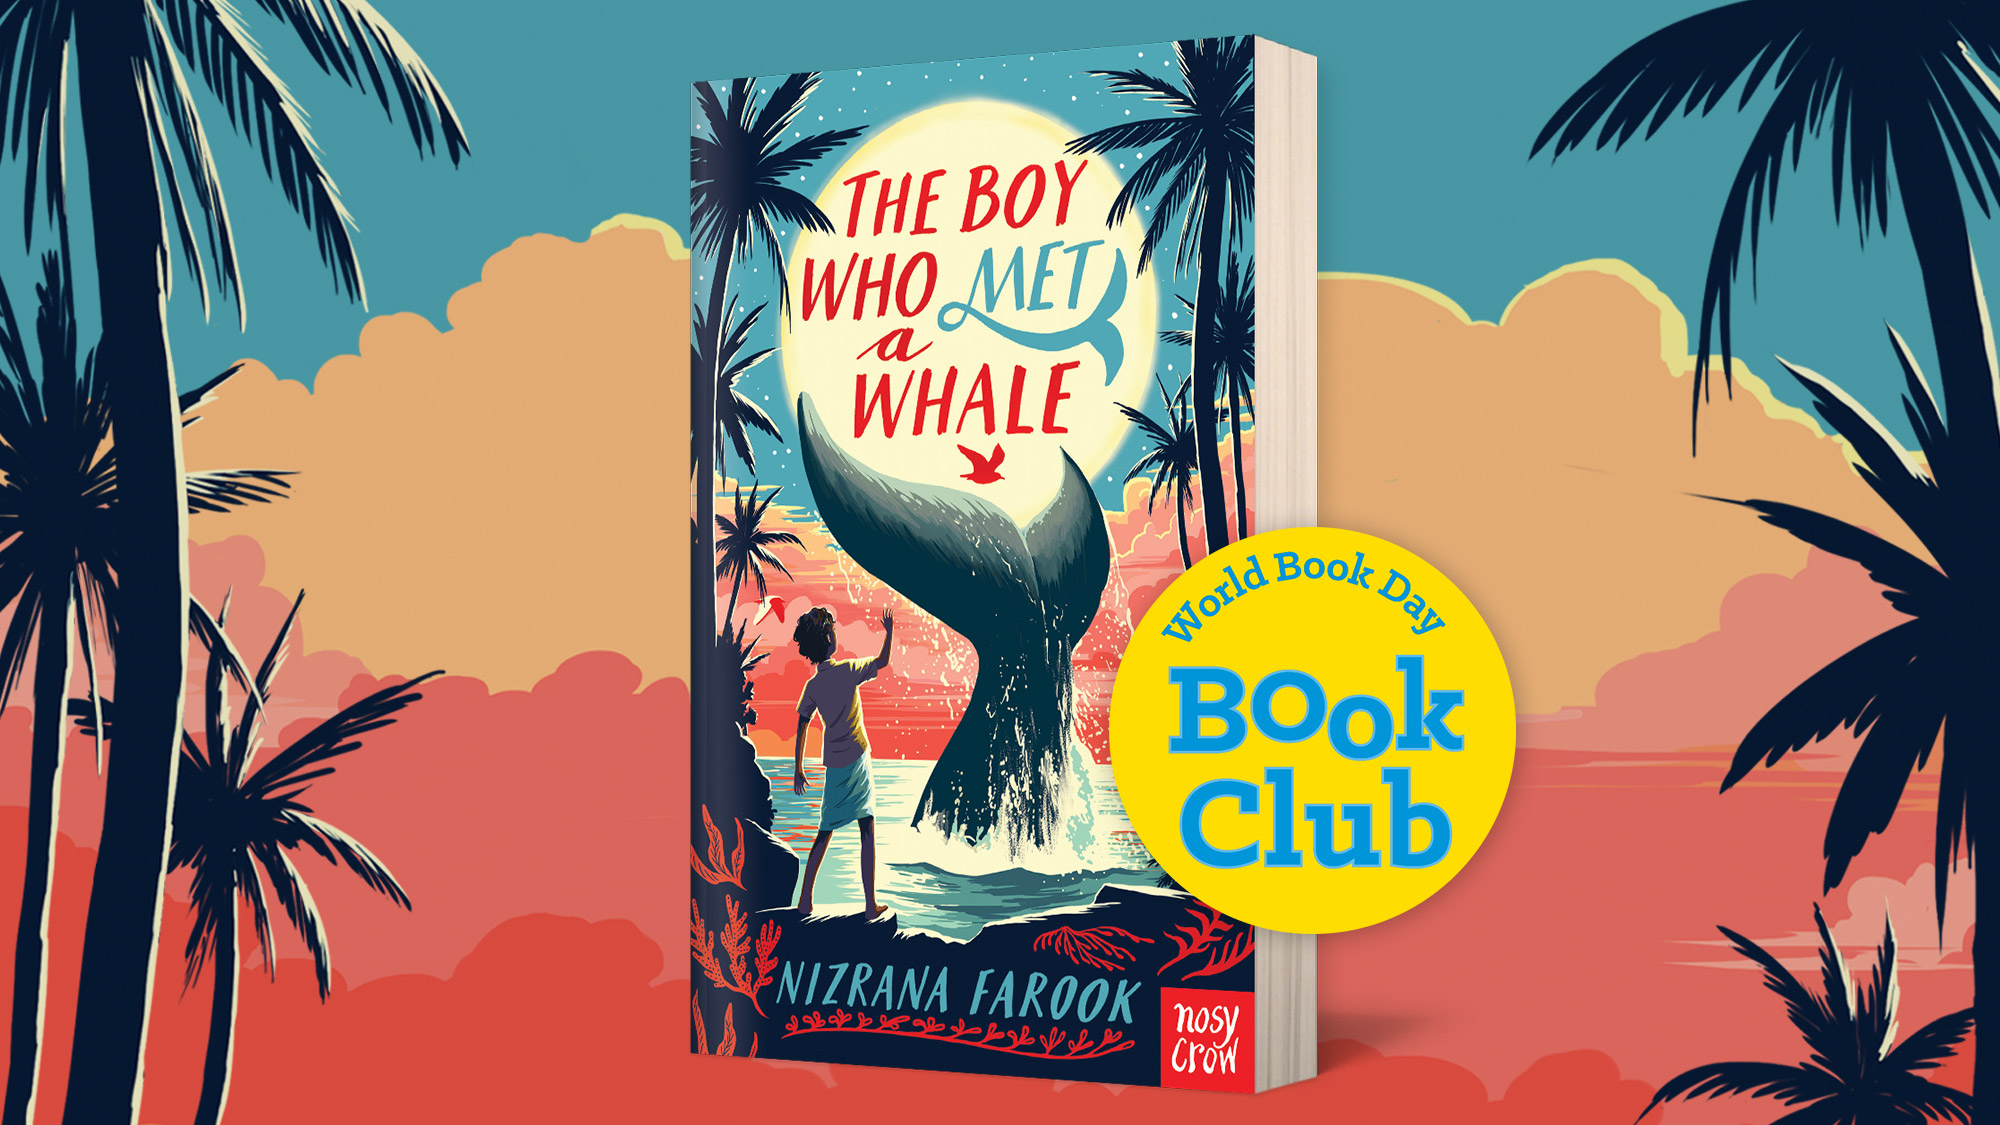 The Boy Who Met a Whale is World Book Day's October Book Club Pick!